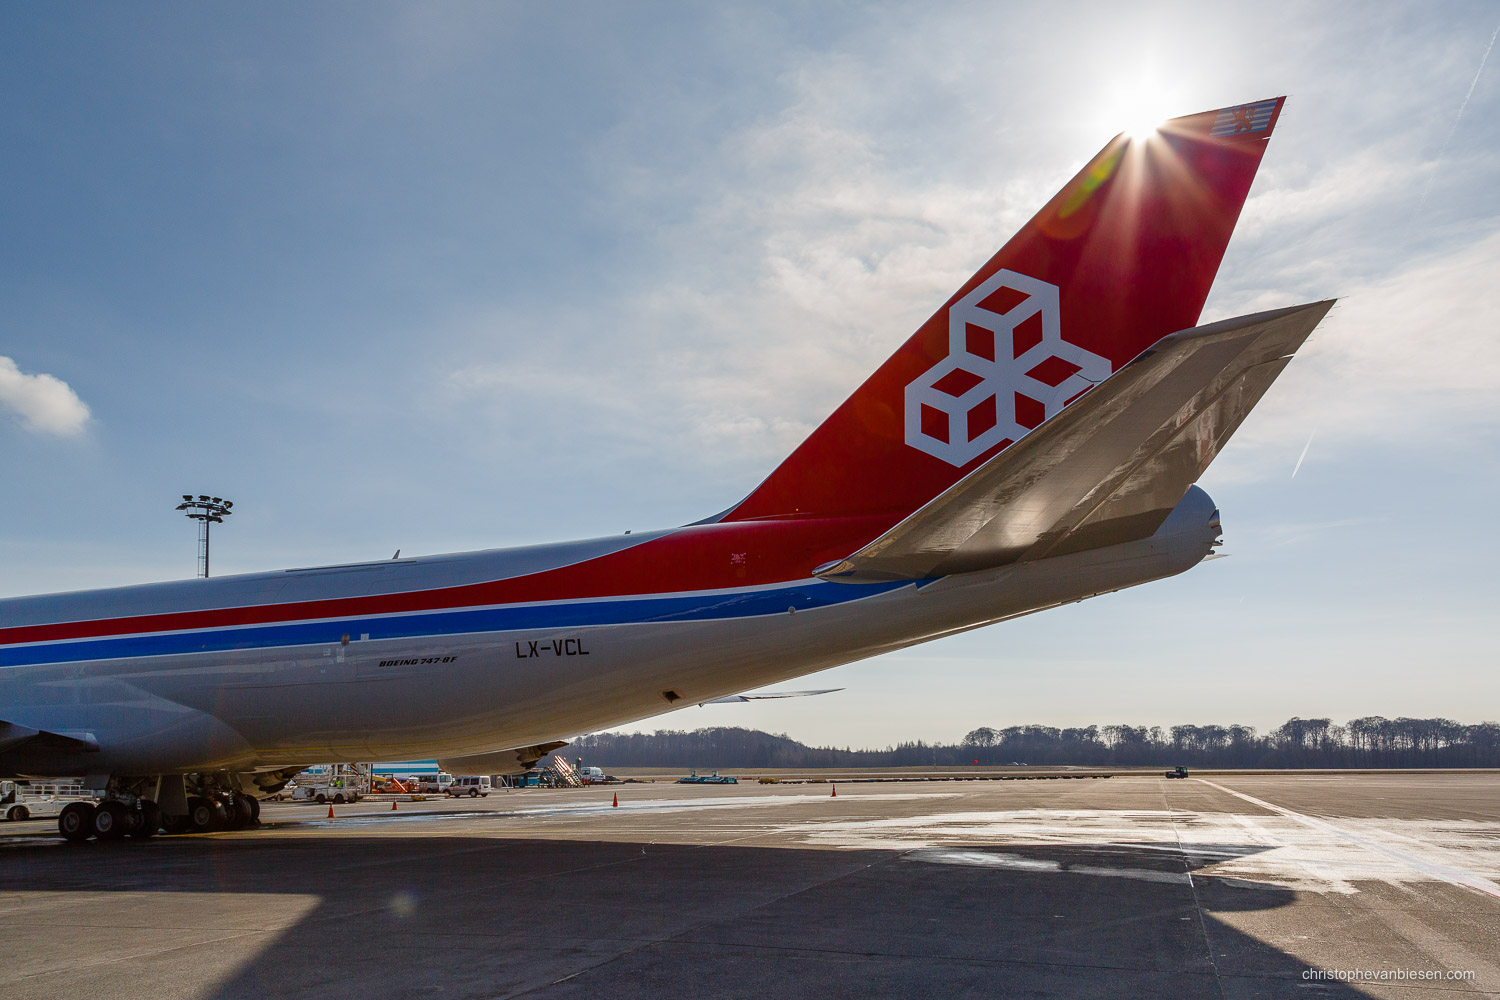 Work with me - Commission Work - Boeing 747 of Luxembourg's Cargolux fleet - Tail - Photography by Christophe Van Biesen - Luxembourg Landscape and Travel Photographer